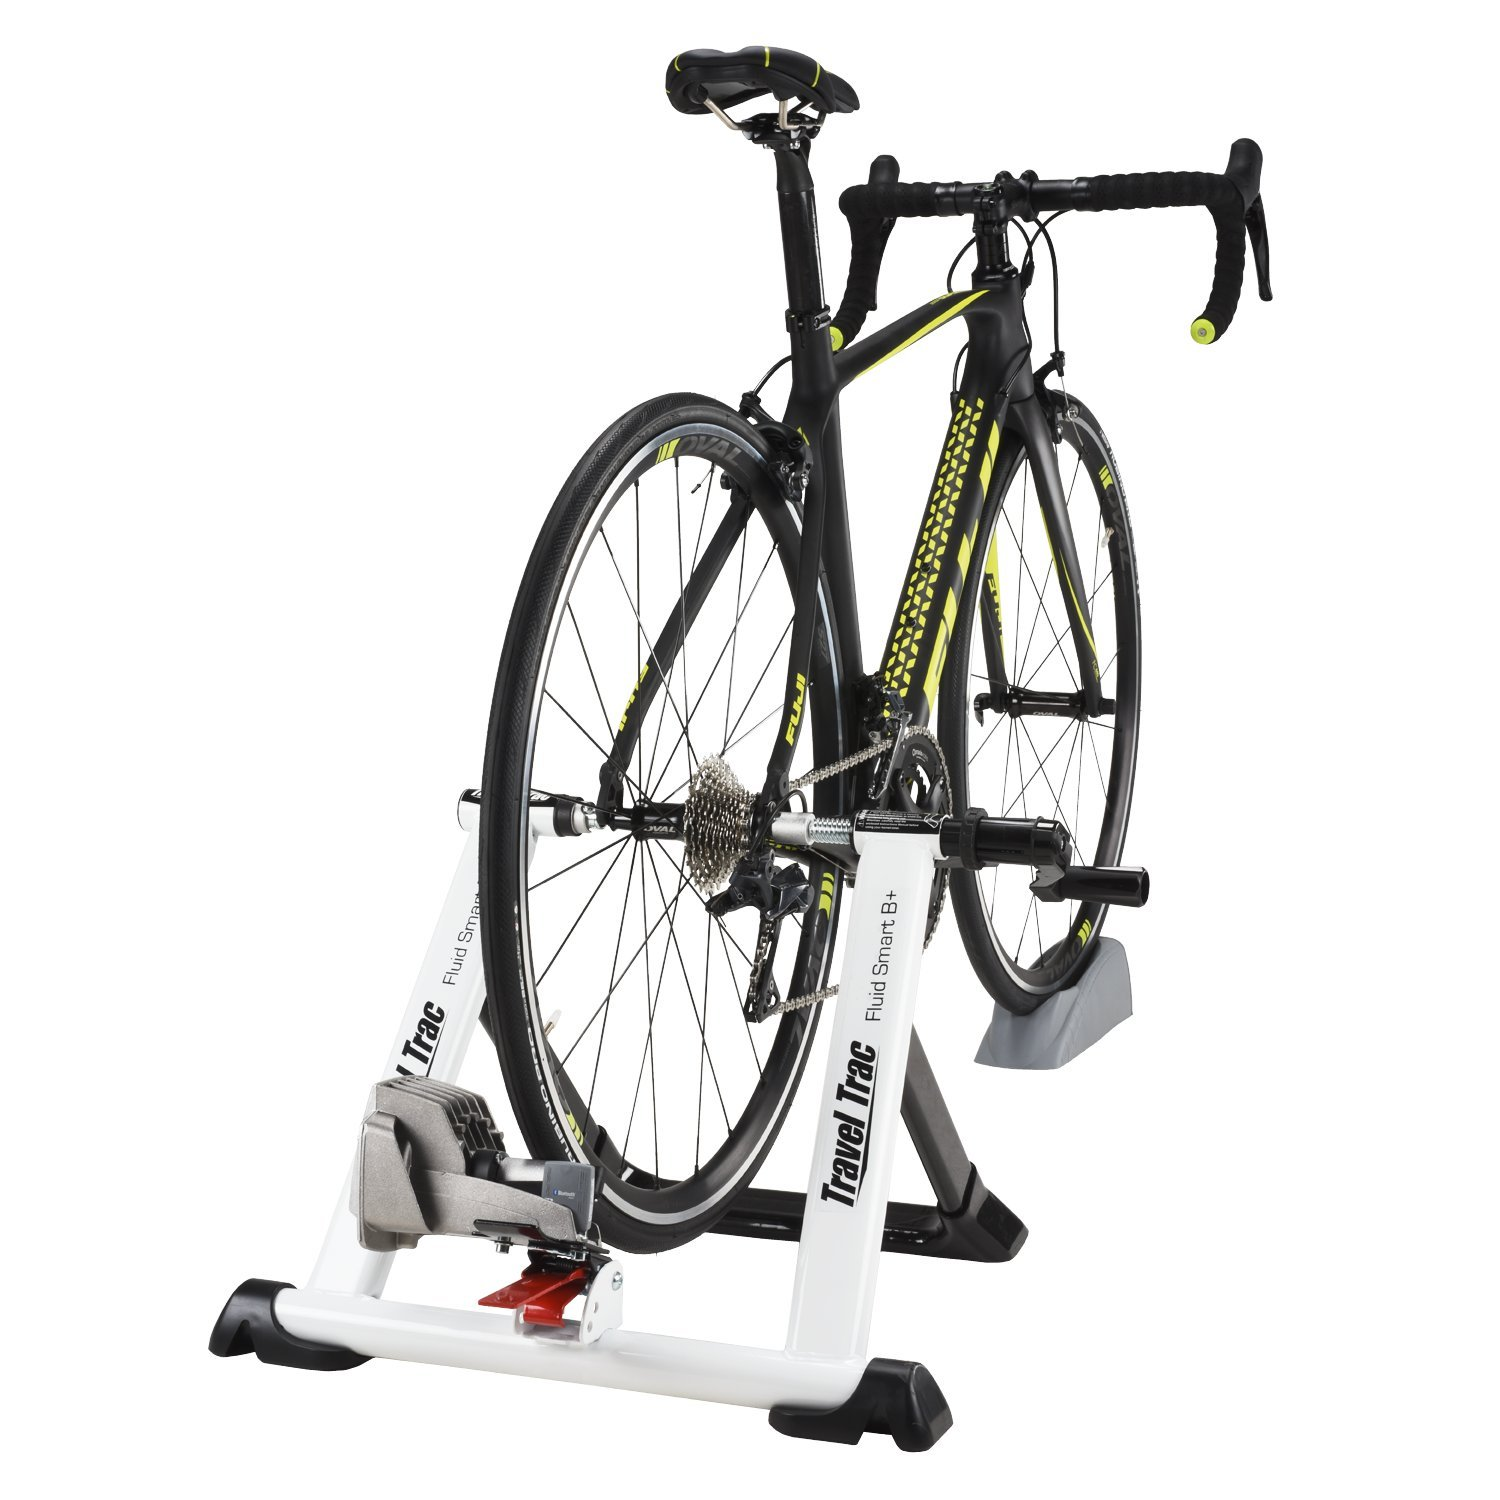 Travel Trac Fluid Smart Trainer by Travel Trac (Image #6)